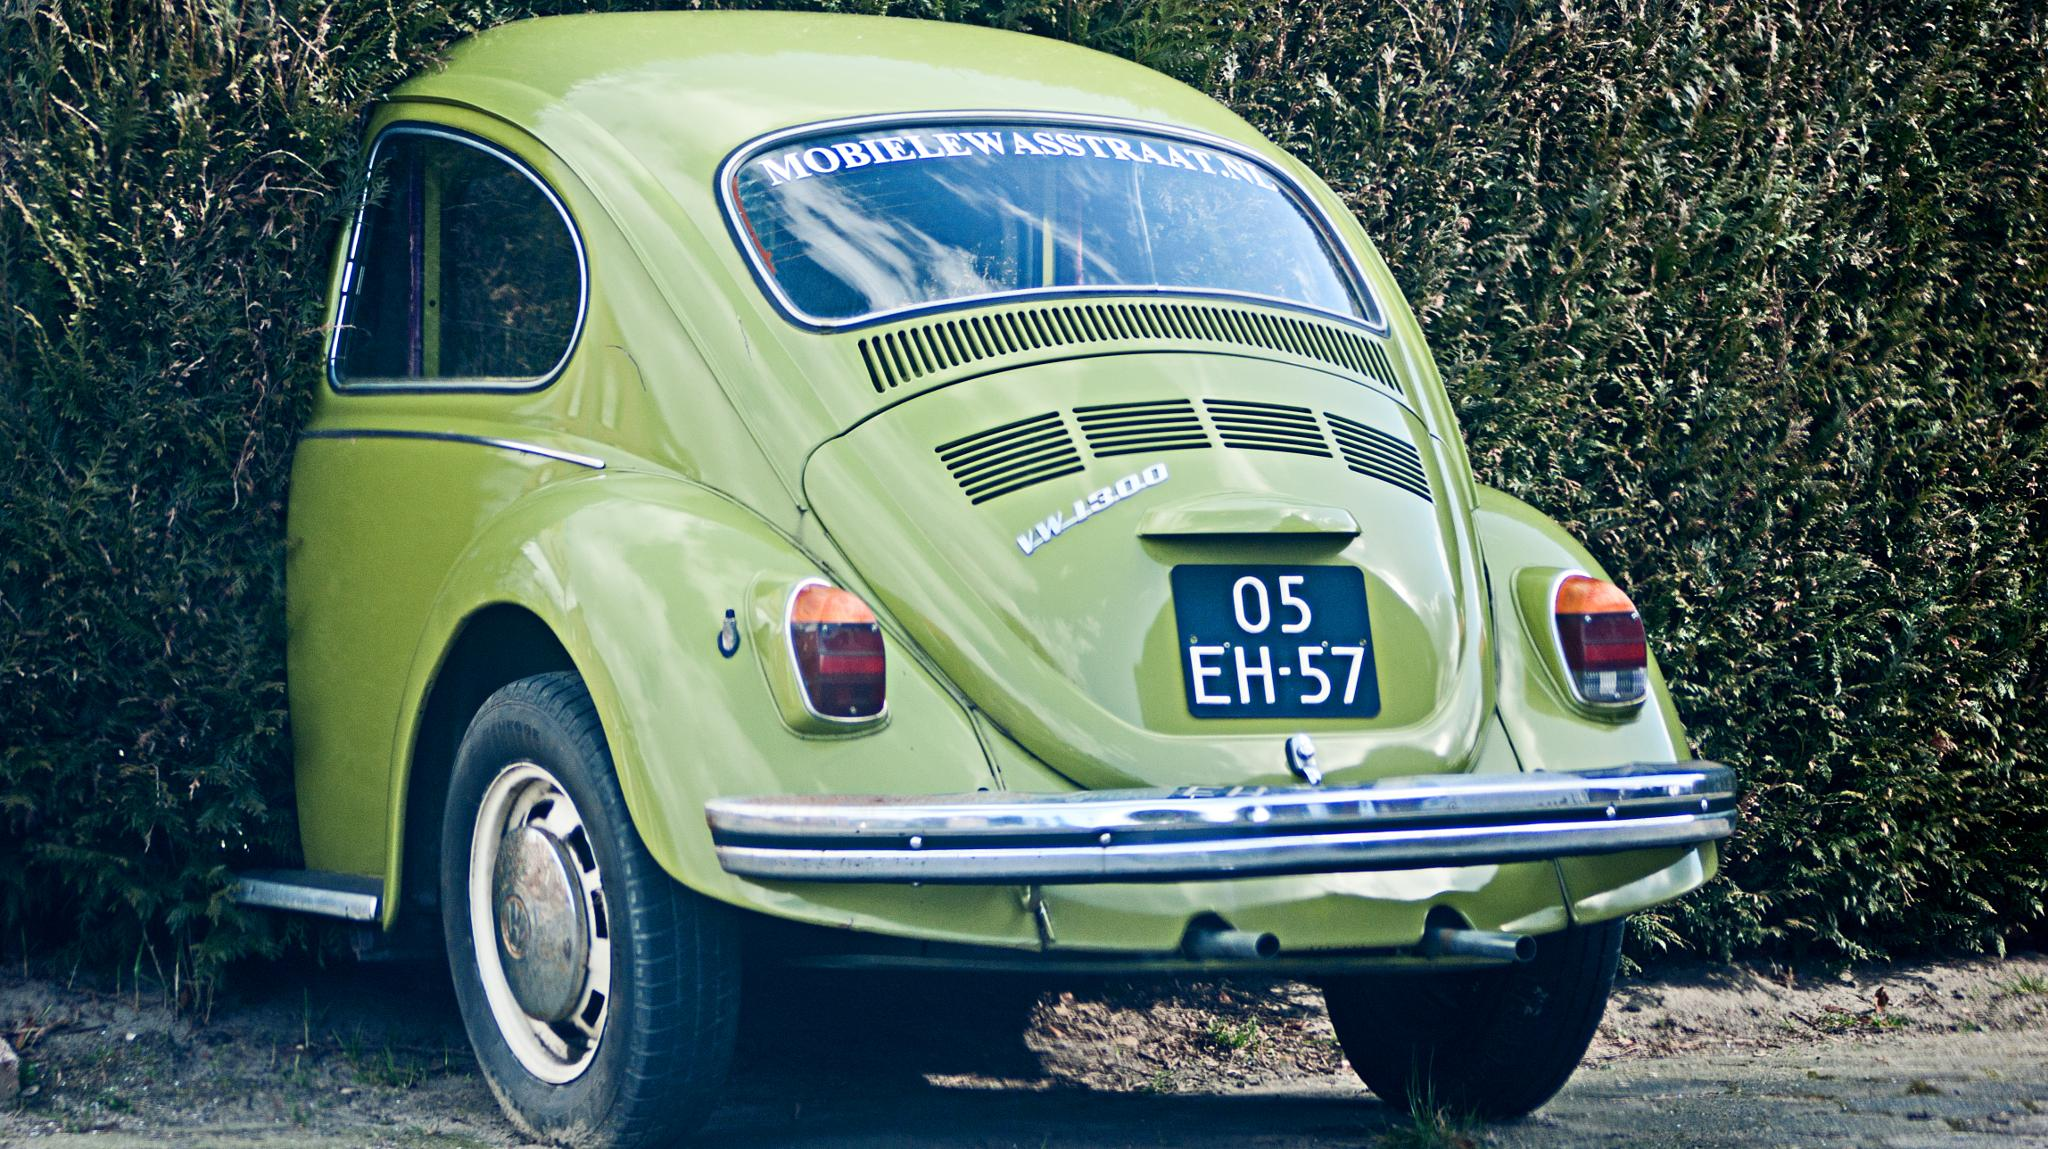 The Beetle by Mary Kouwenhoven